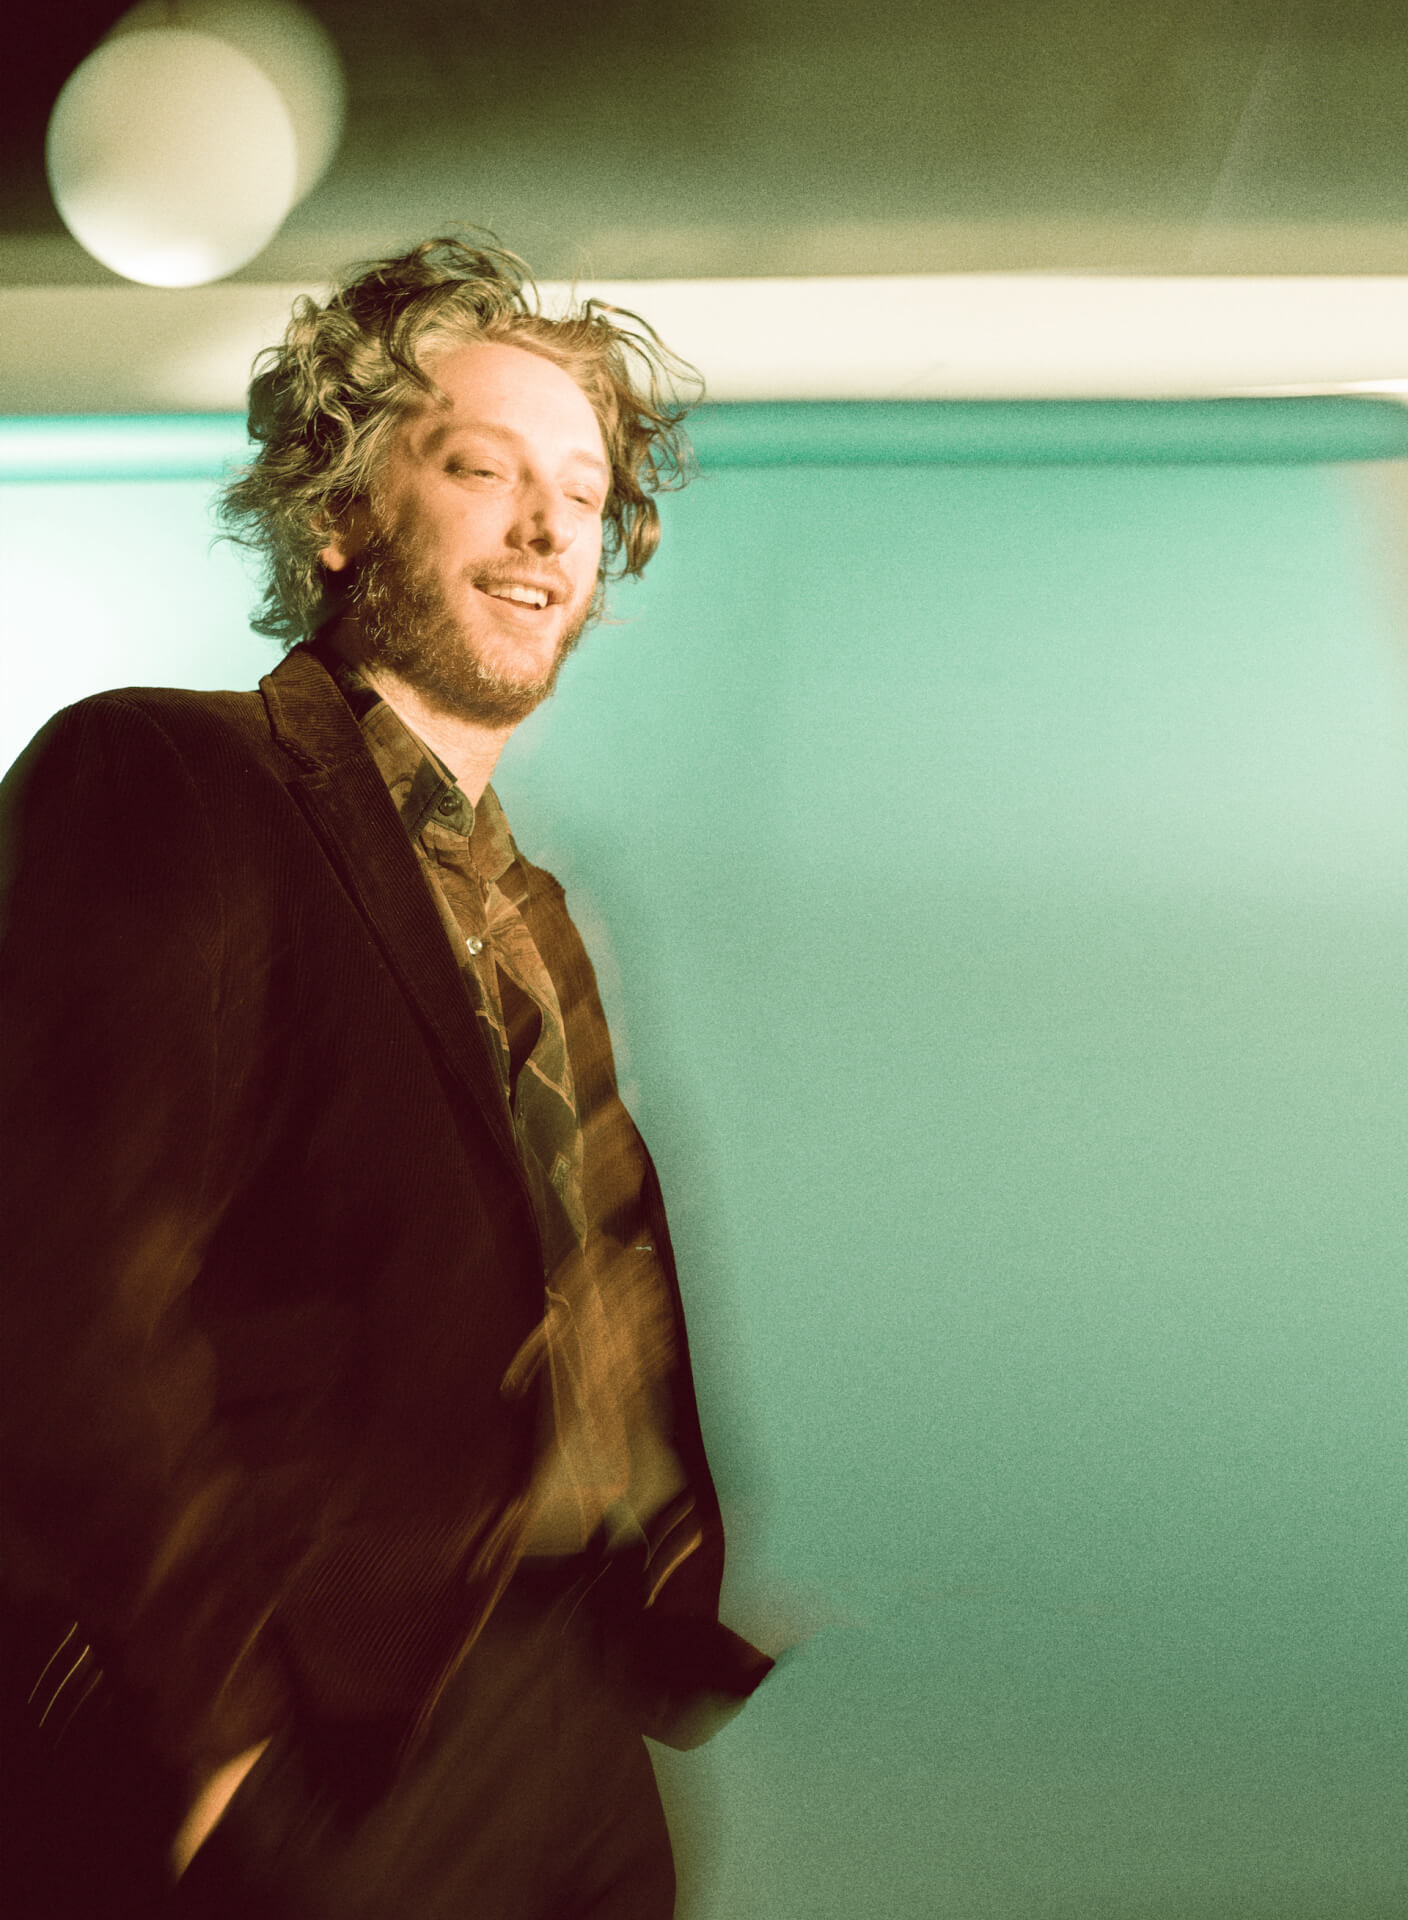 Oneohtrix Point Neverの傑作を最高音質で楽しめる『MAGIC ONEOHTRIX POINT NEVER』Blu-ray盤が発売決定! music210915_opn-02